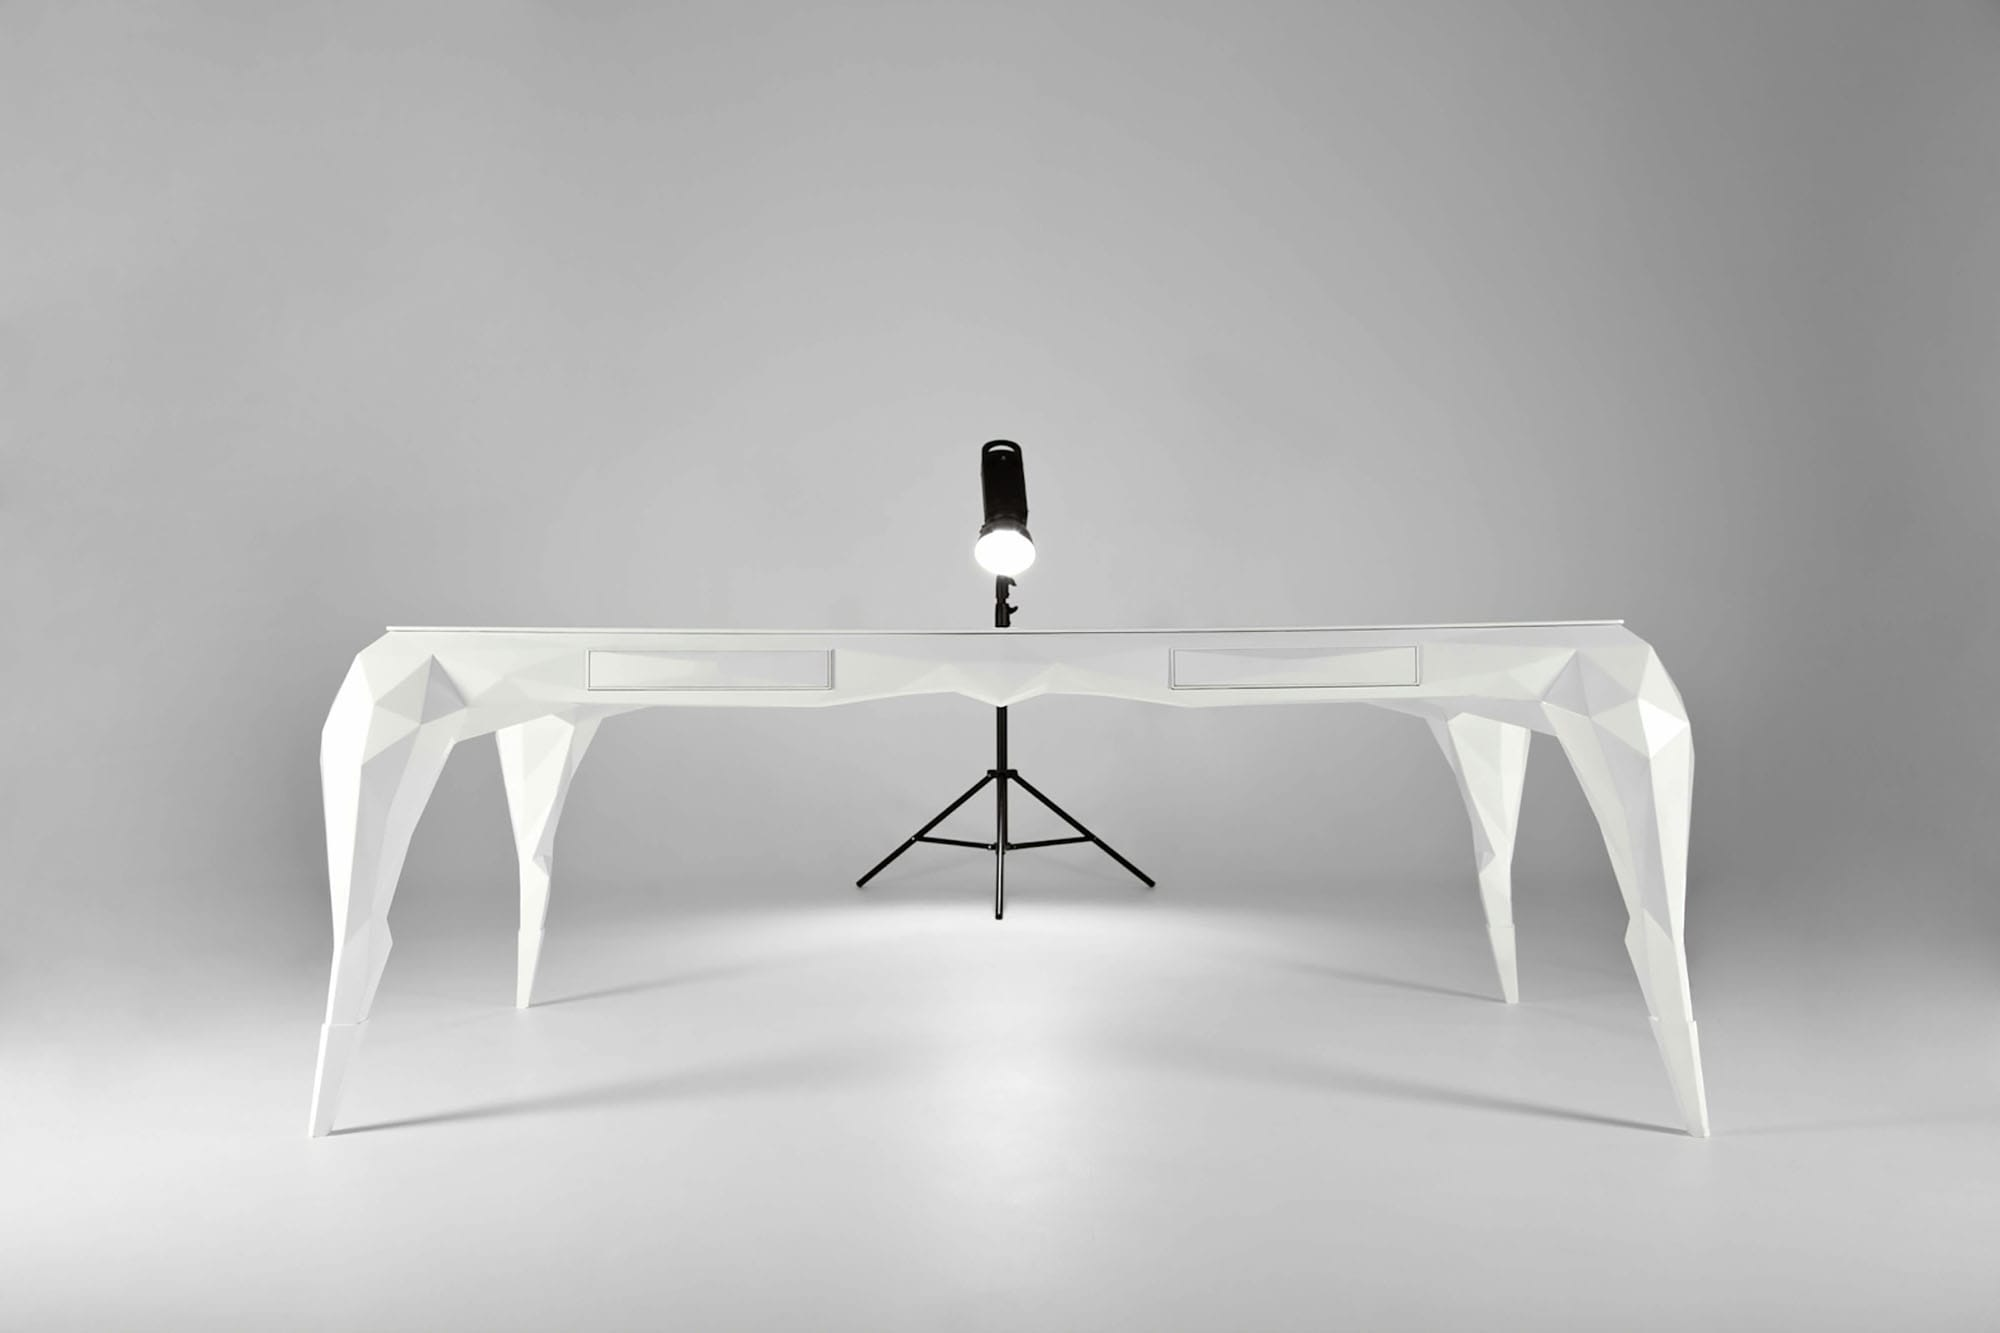 jasser studio - skin collection animal design furniture geometry white desk